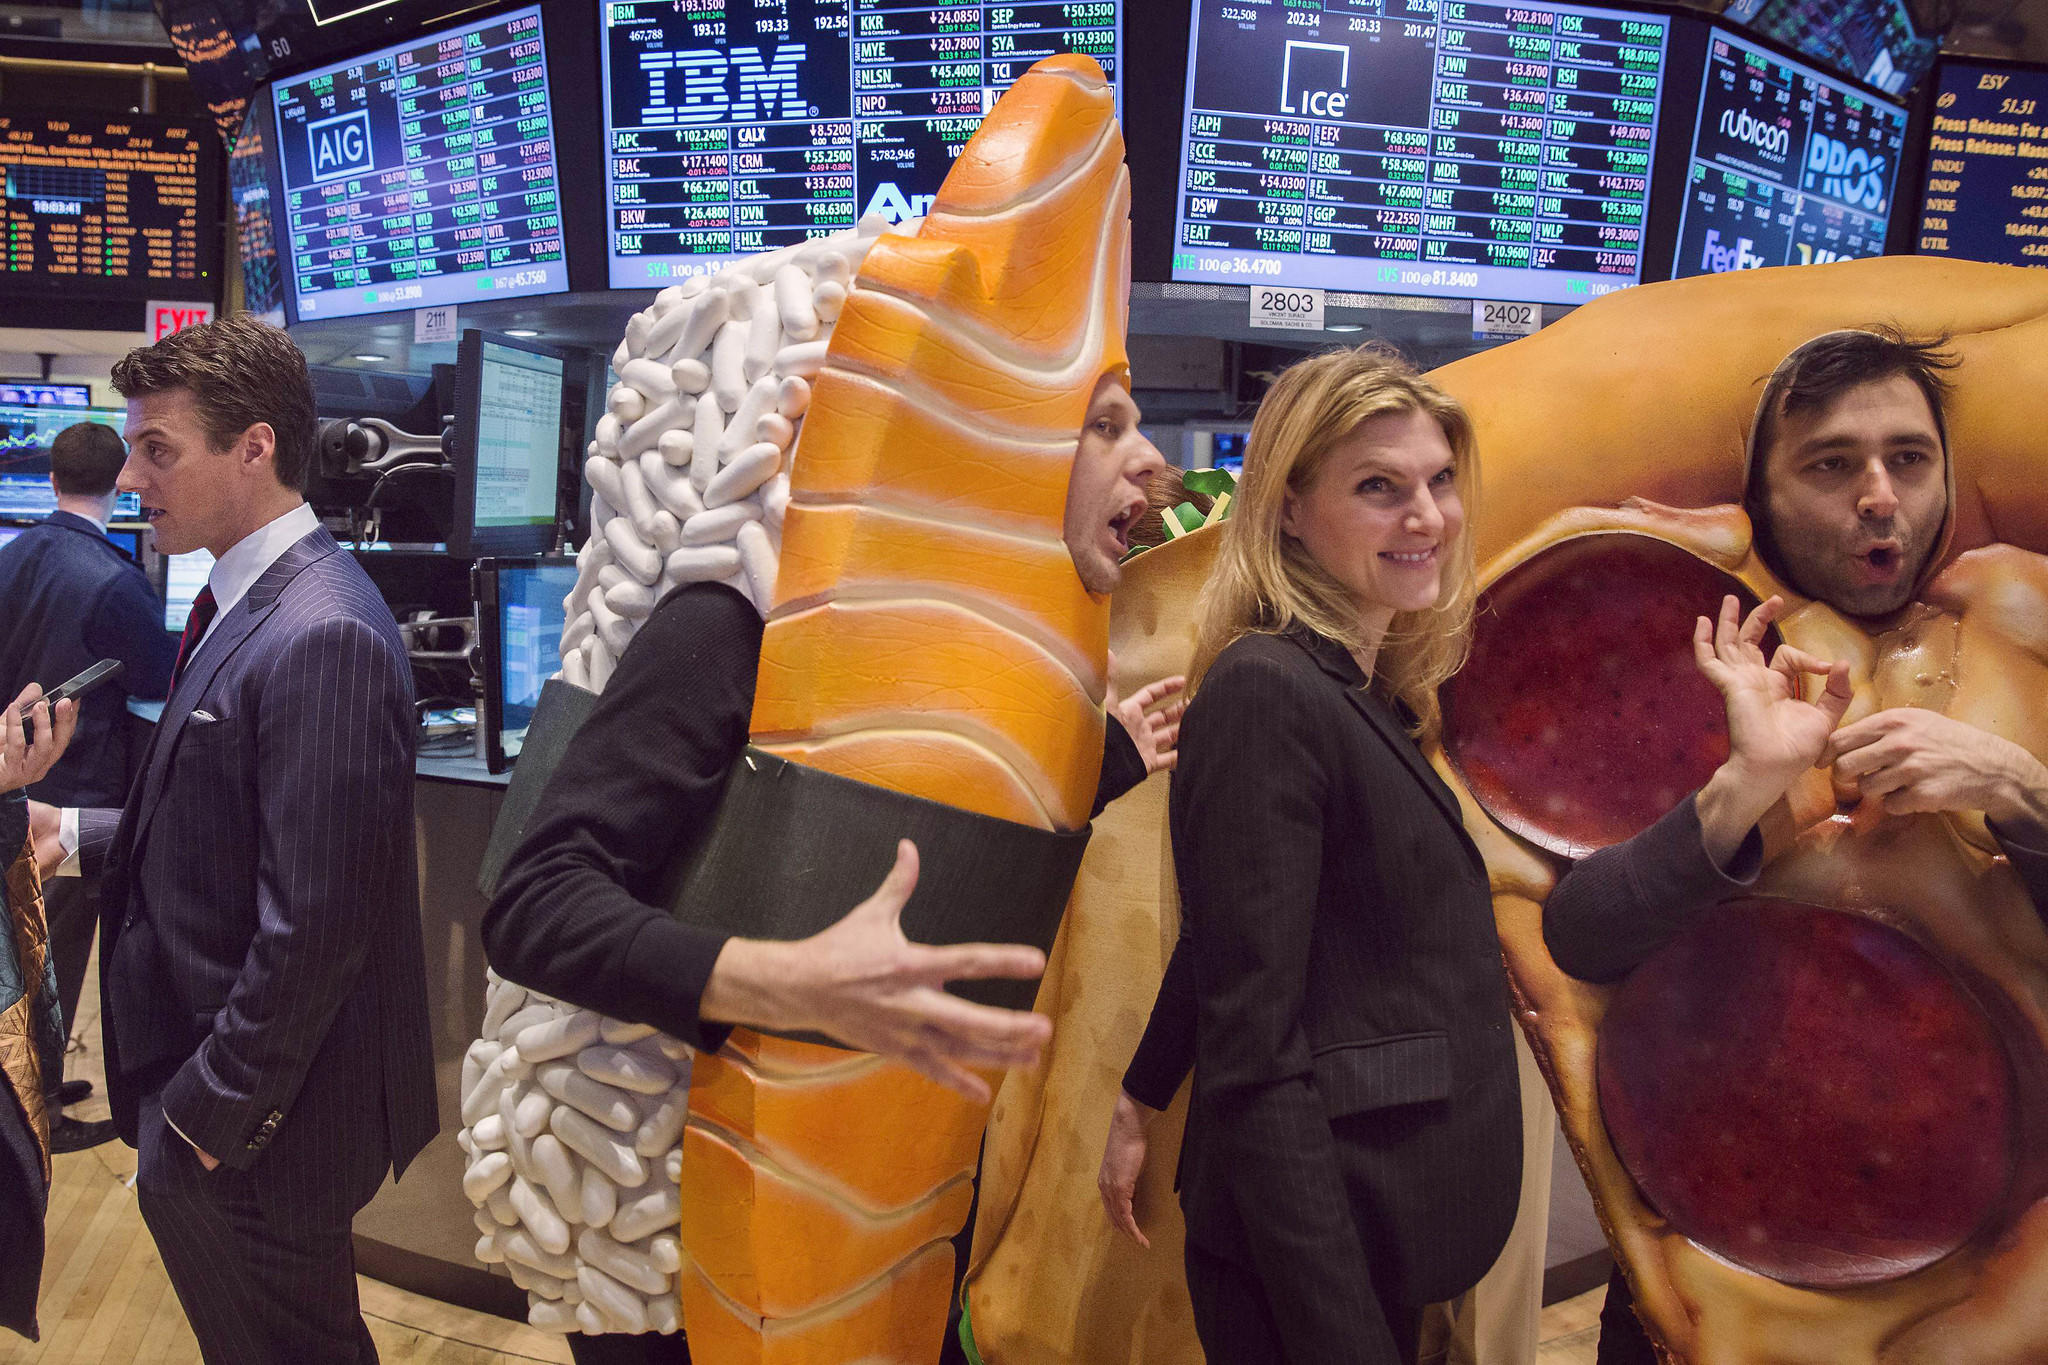 GrubHub CEO Matt Maloney, left, is interviewed on the floor of the New York Stock Exchange as people in food costumes mill about the floor.